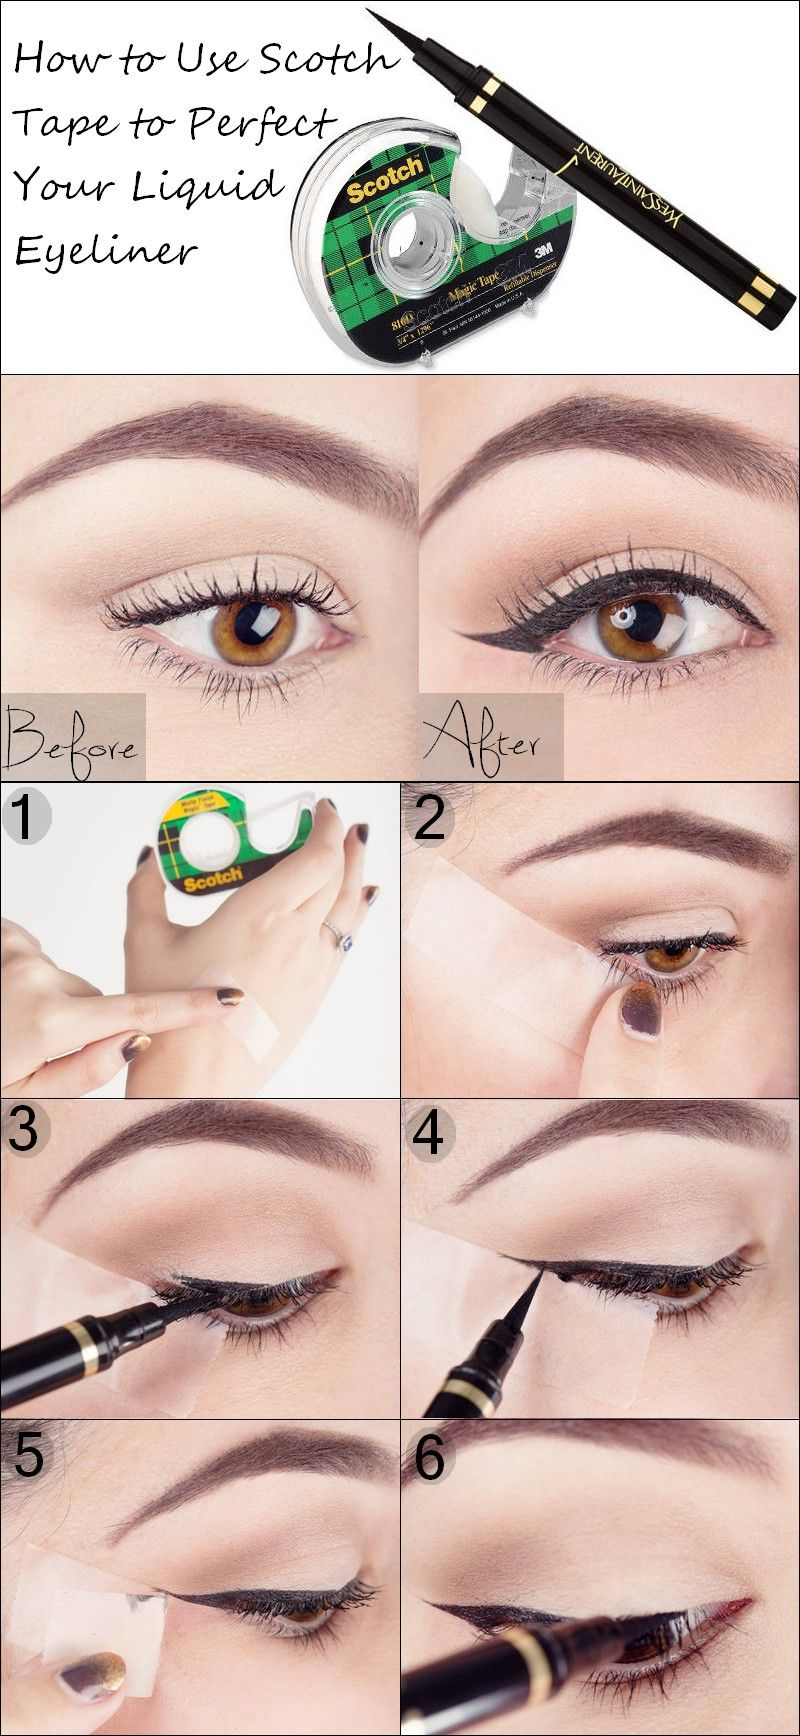 How to Use Scotch Tape to Perfect Your Liquid Eyeliner | Maquillaje ...